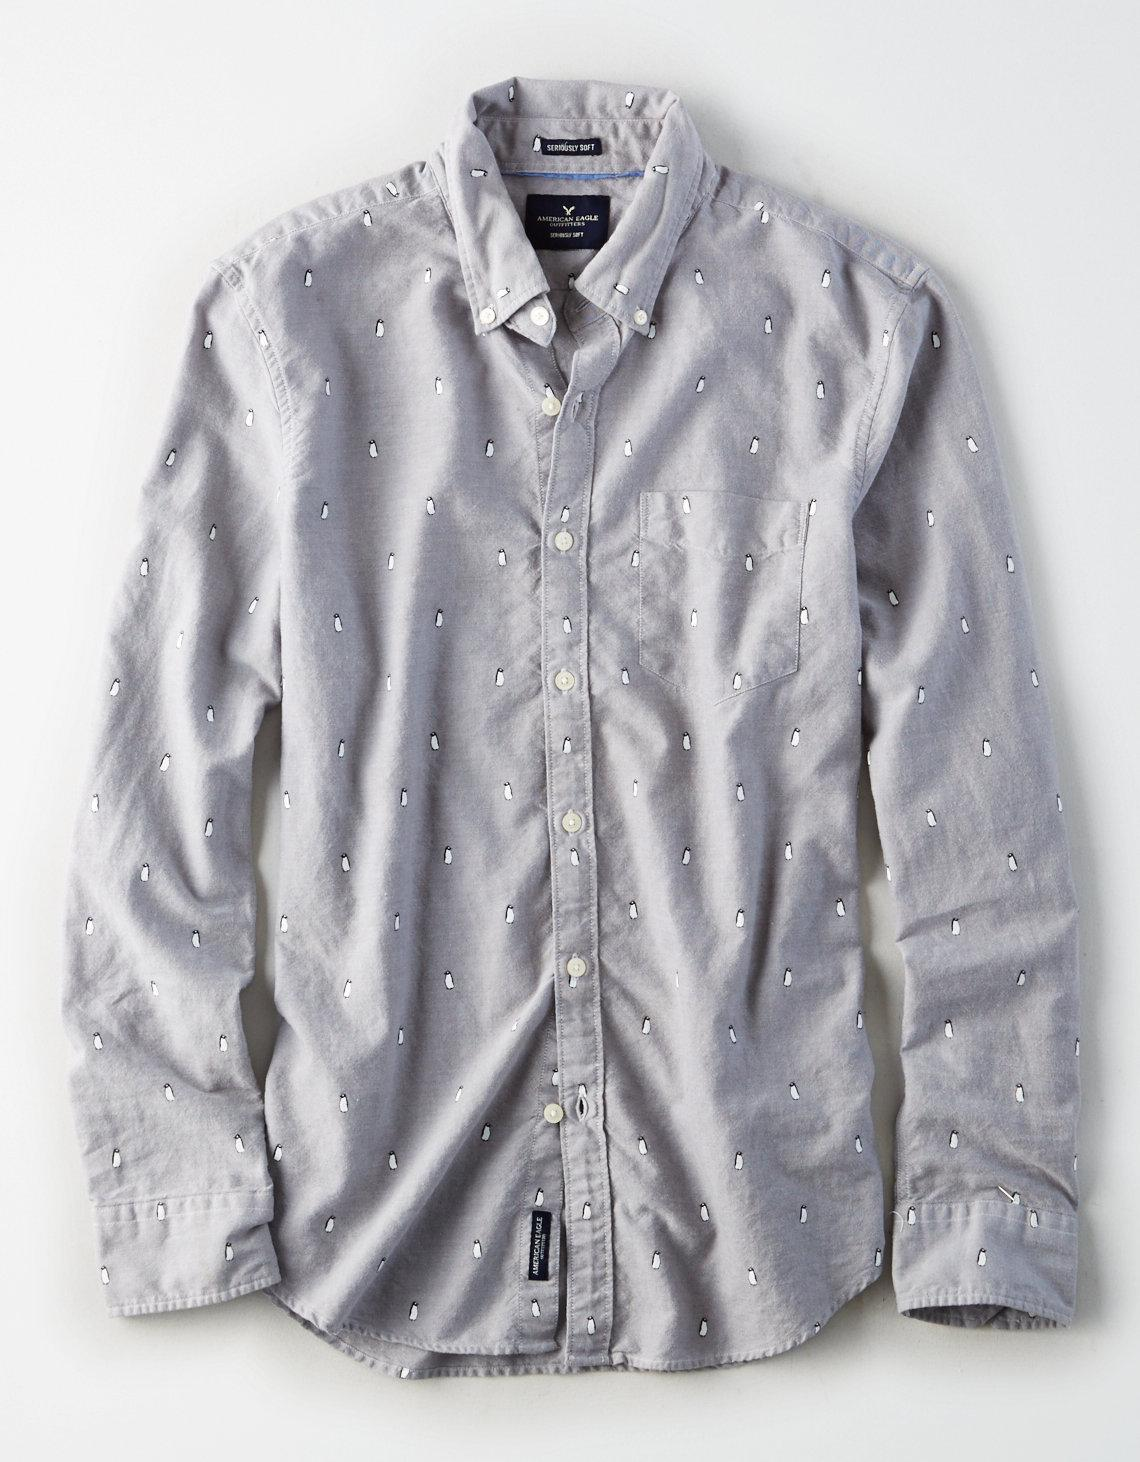 8386d2d8 American Eagle Ae Penguin Print Oxford Shirt in Gray for Men - Lyst